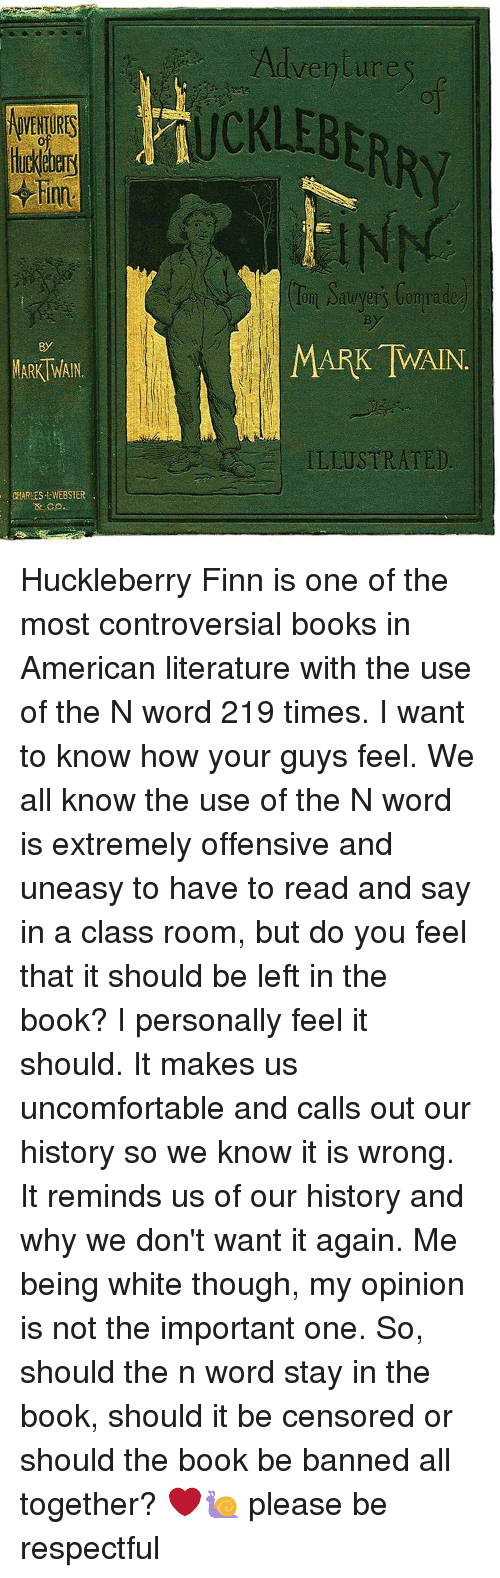 an analysis of the controversy in the adventures of huckleberry finn by mark twain Mark twain's adventures of huckleberry finn for more about adventures of huckleberry finn and teaching controversial topics, see huck finn in context.